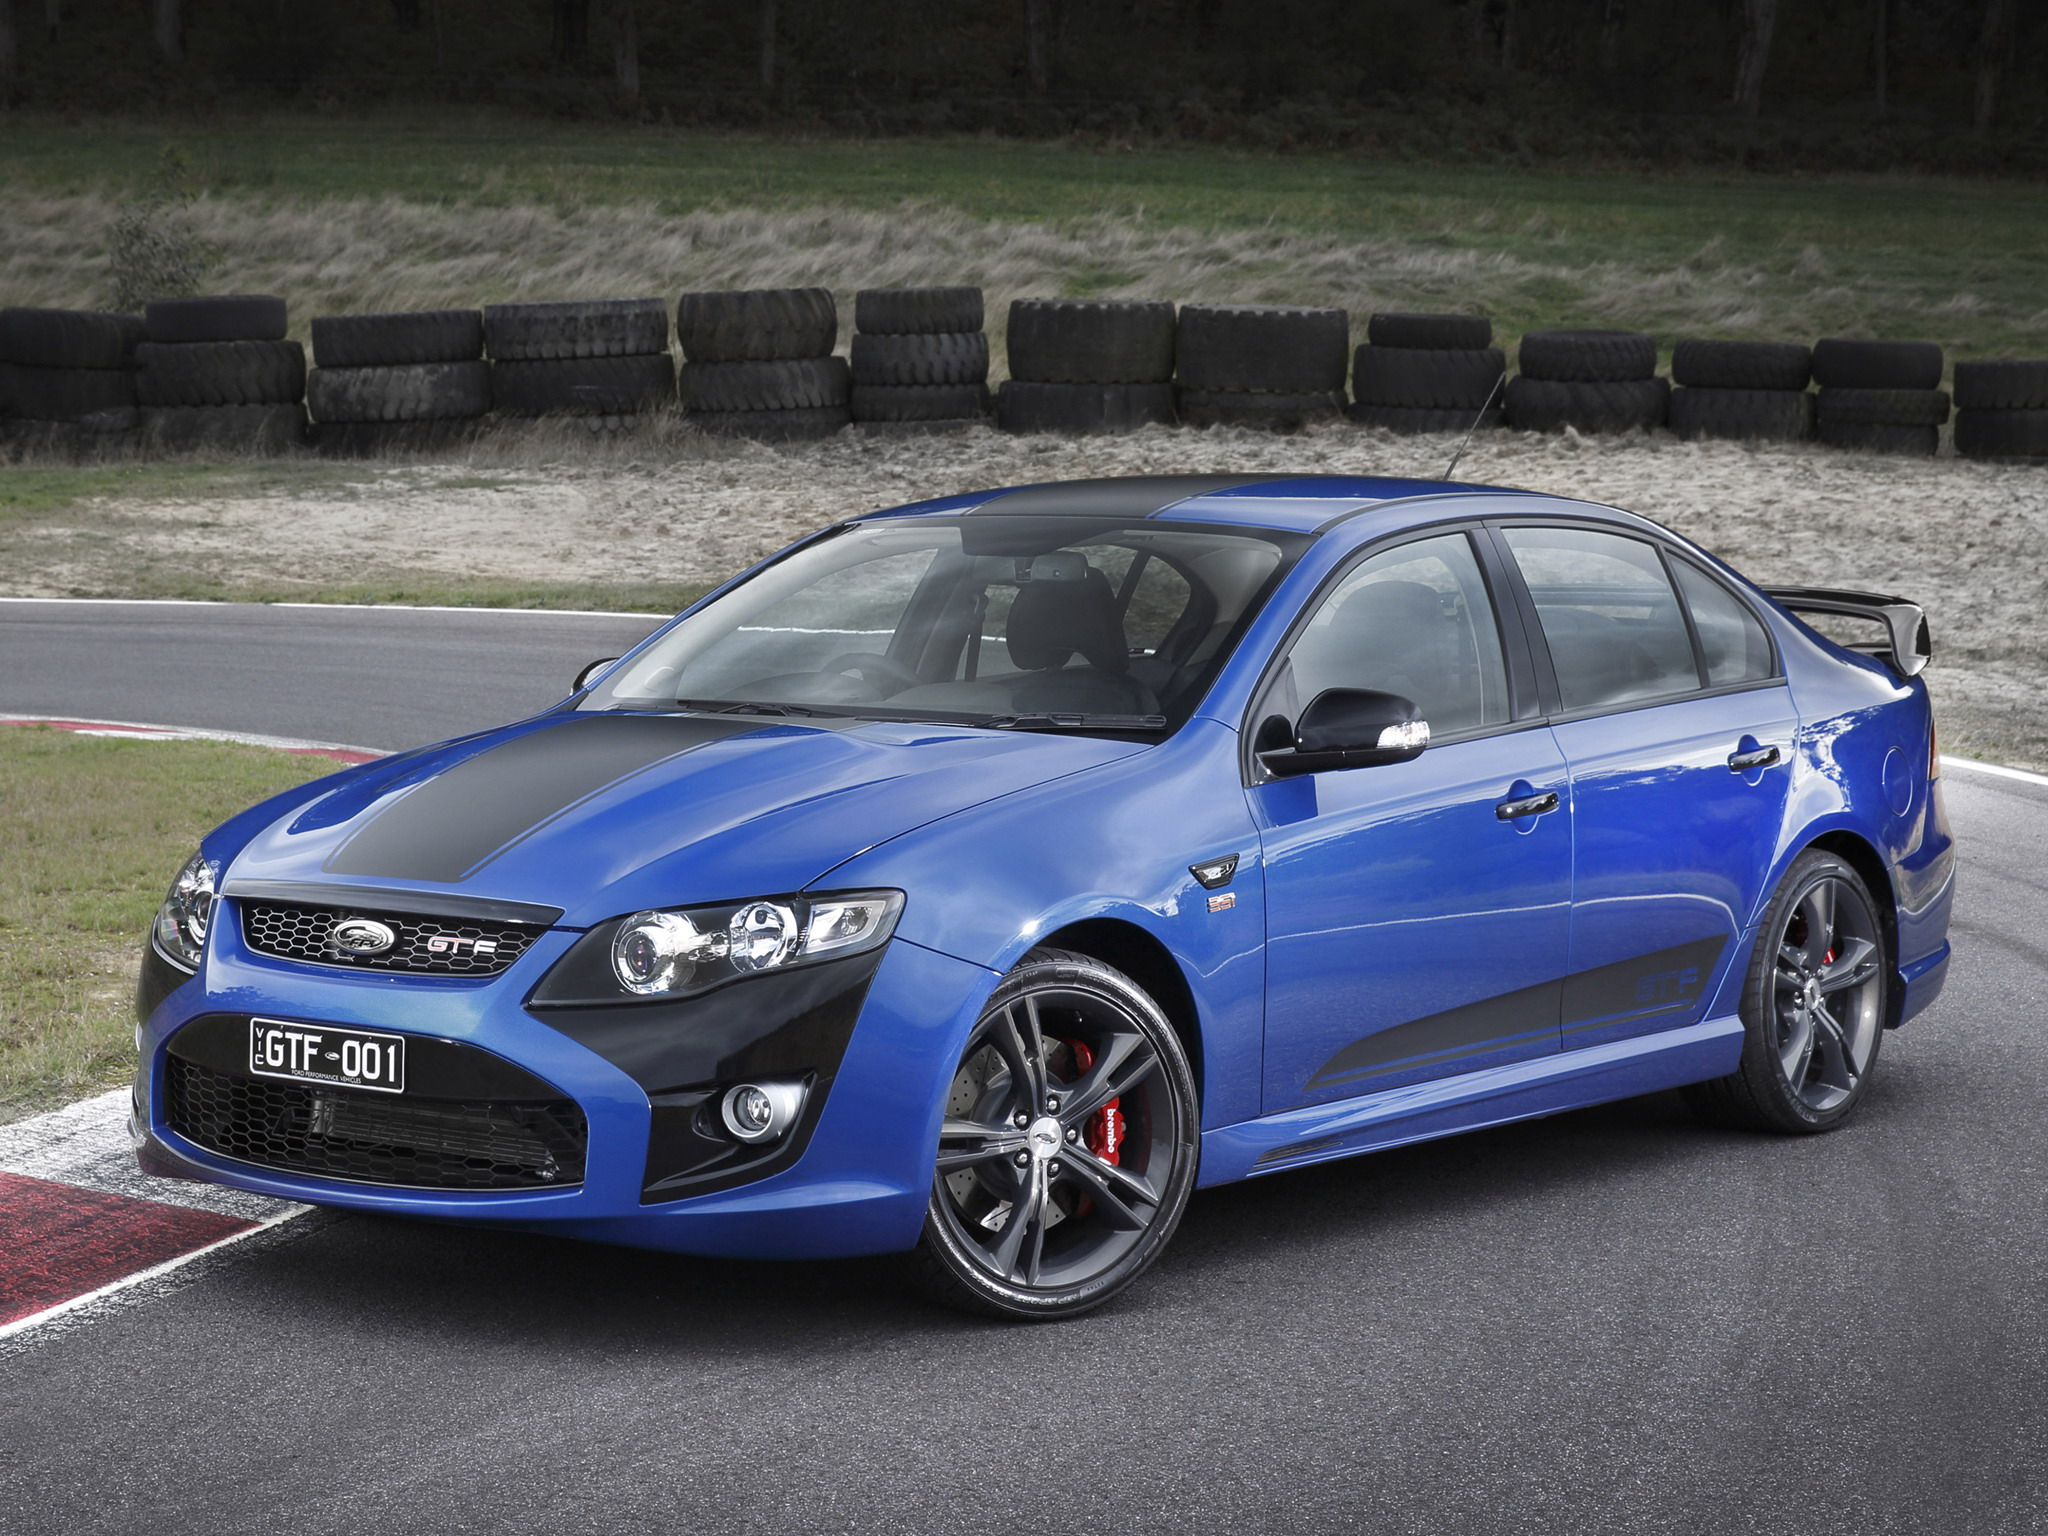 2015 Ford FPV GT F | Top Speed